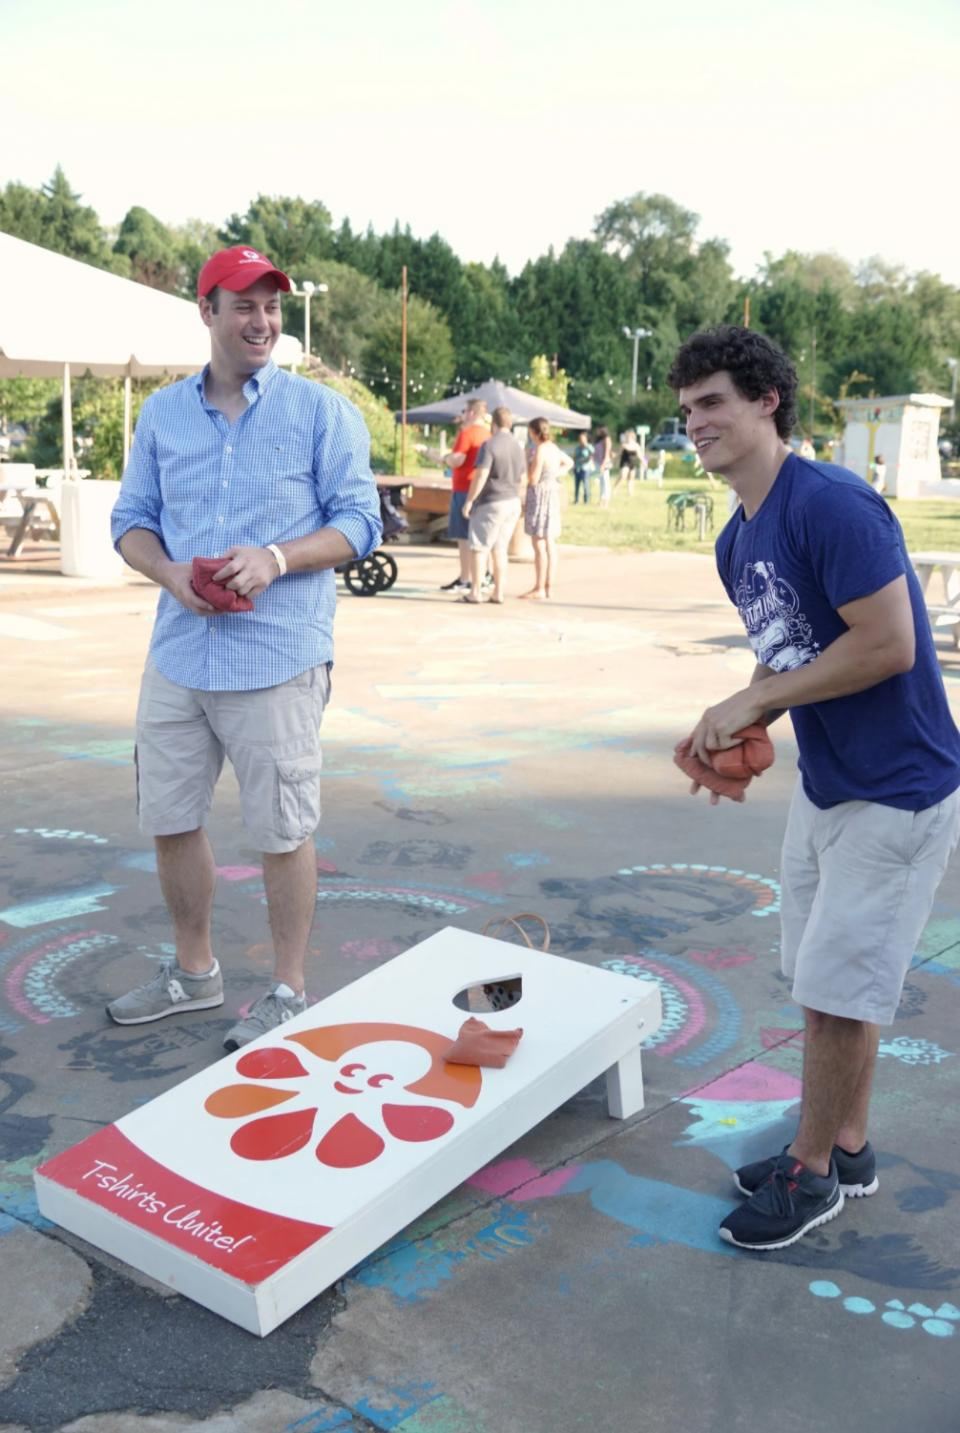 Marc plays cornhole with Inkers at the Charlottesville BBQ.